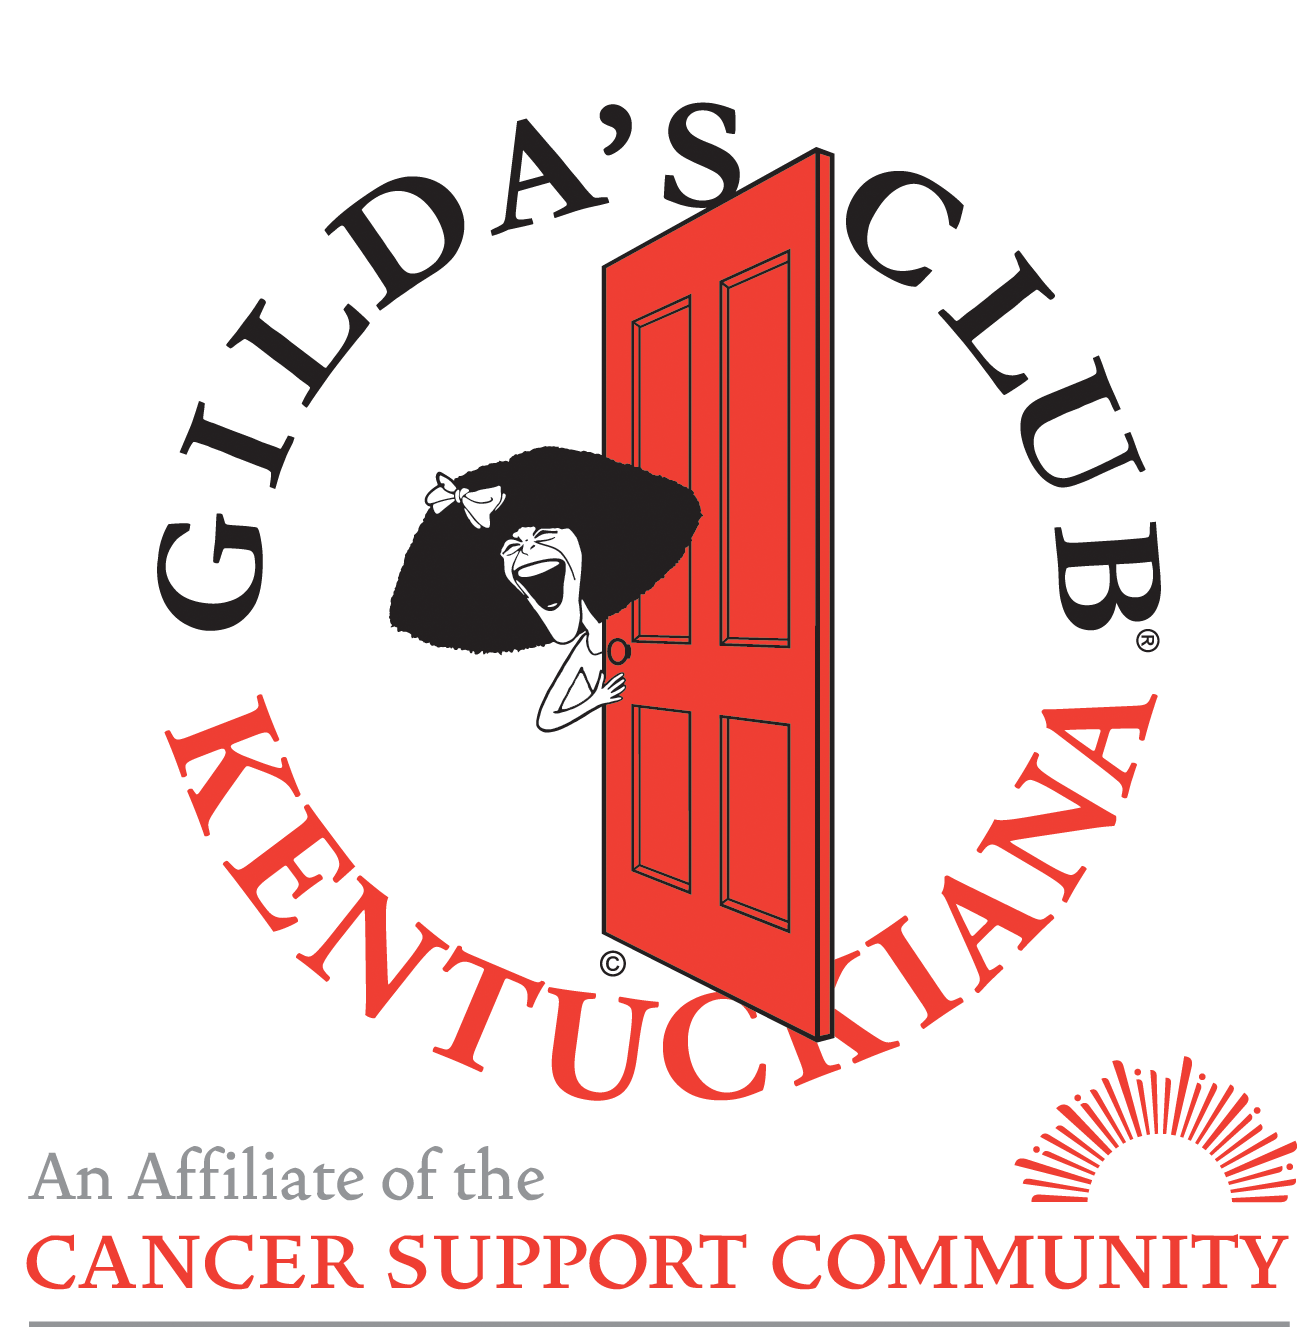 gildas club kentuckiana